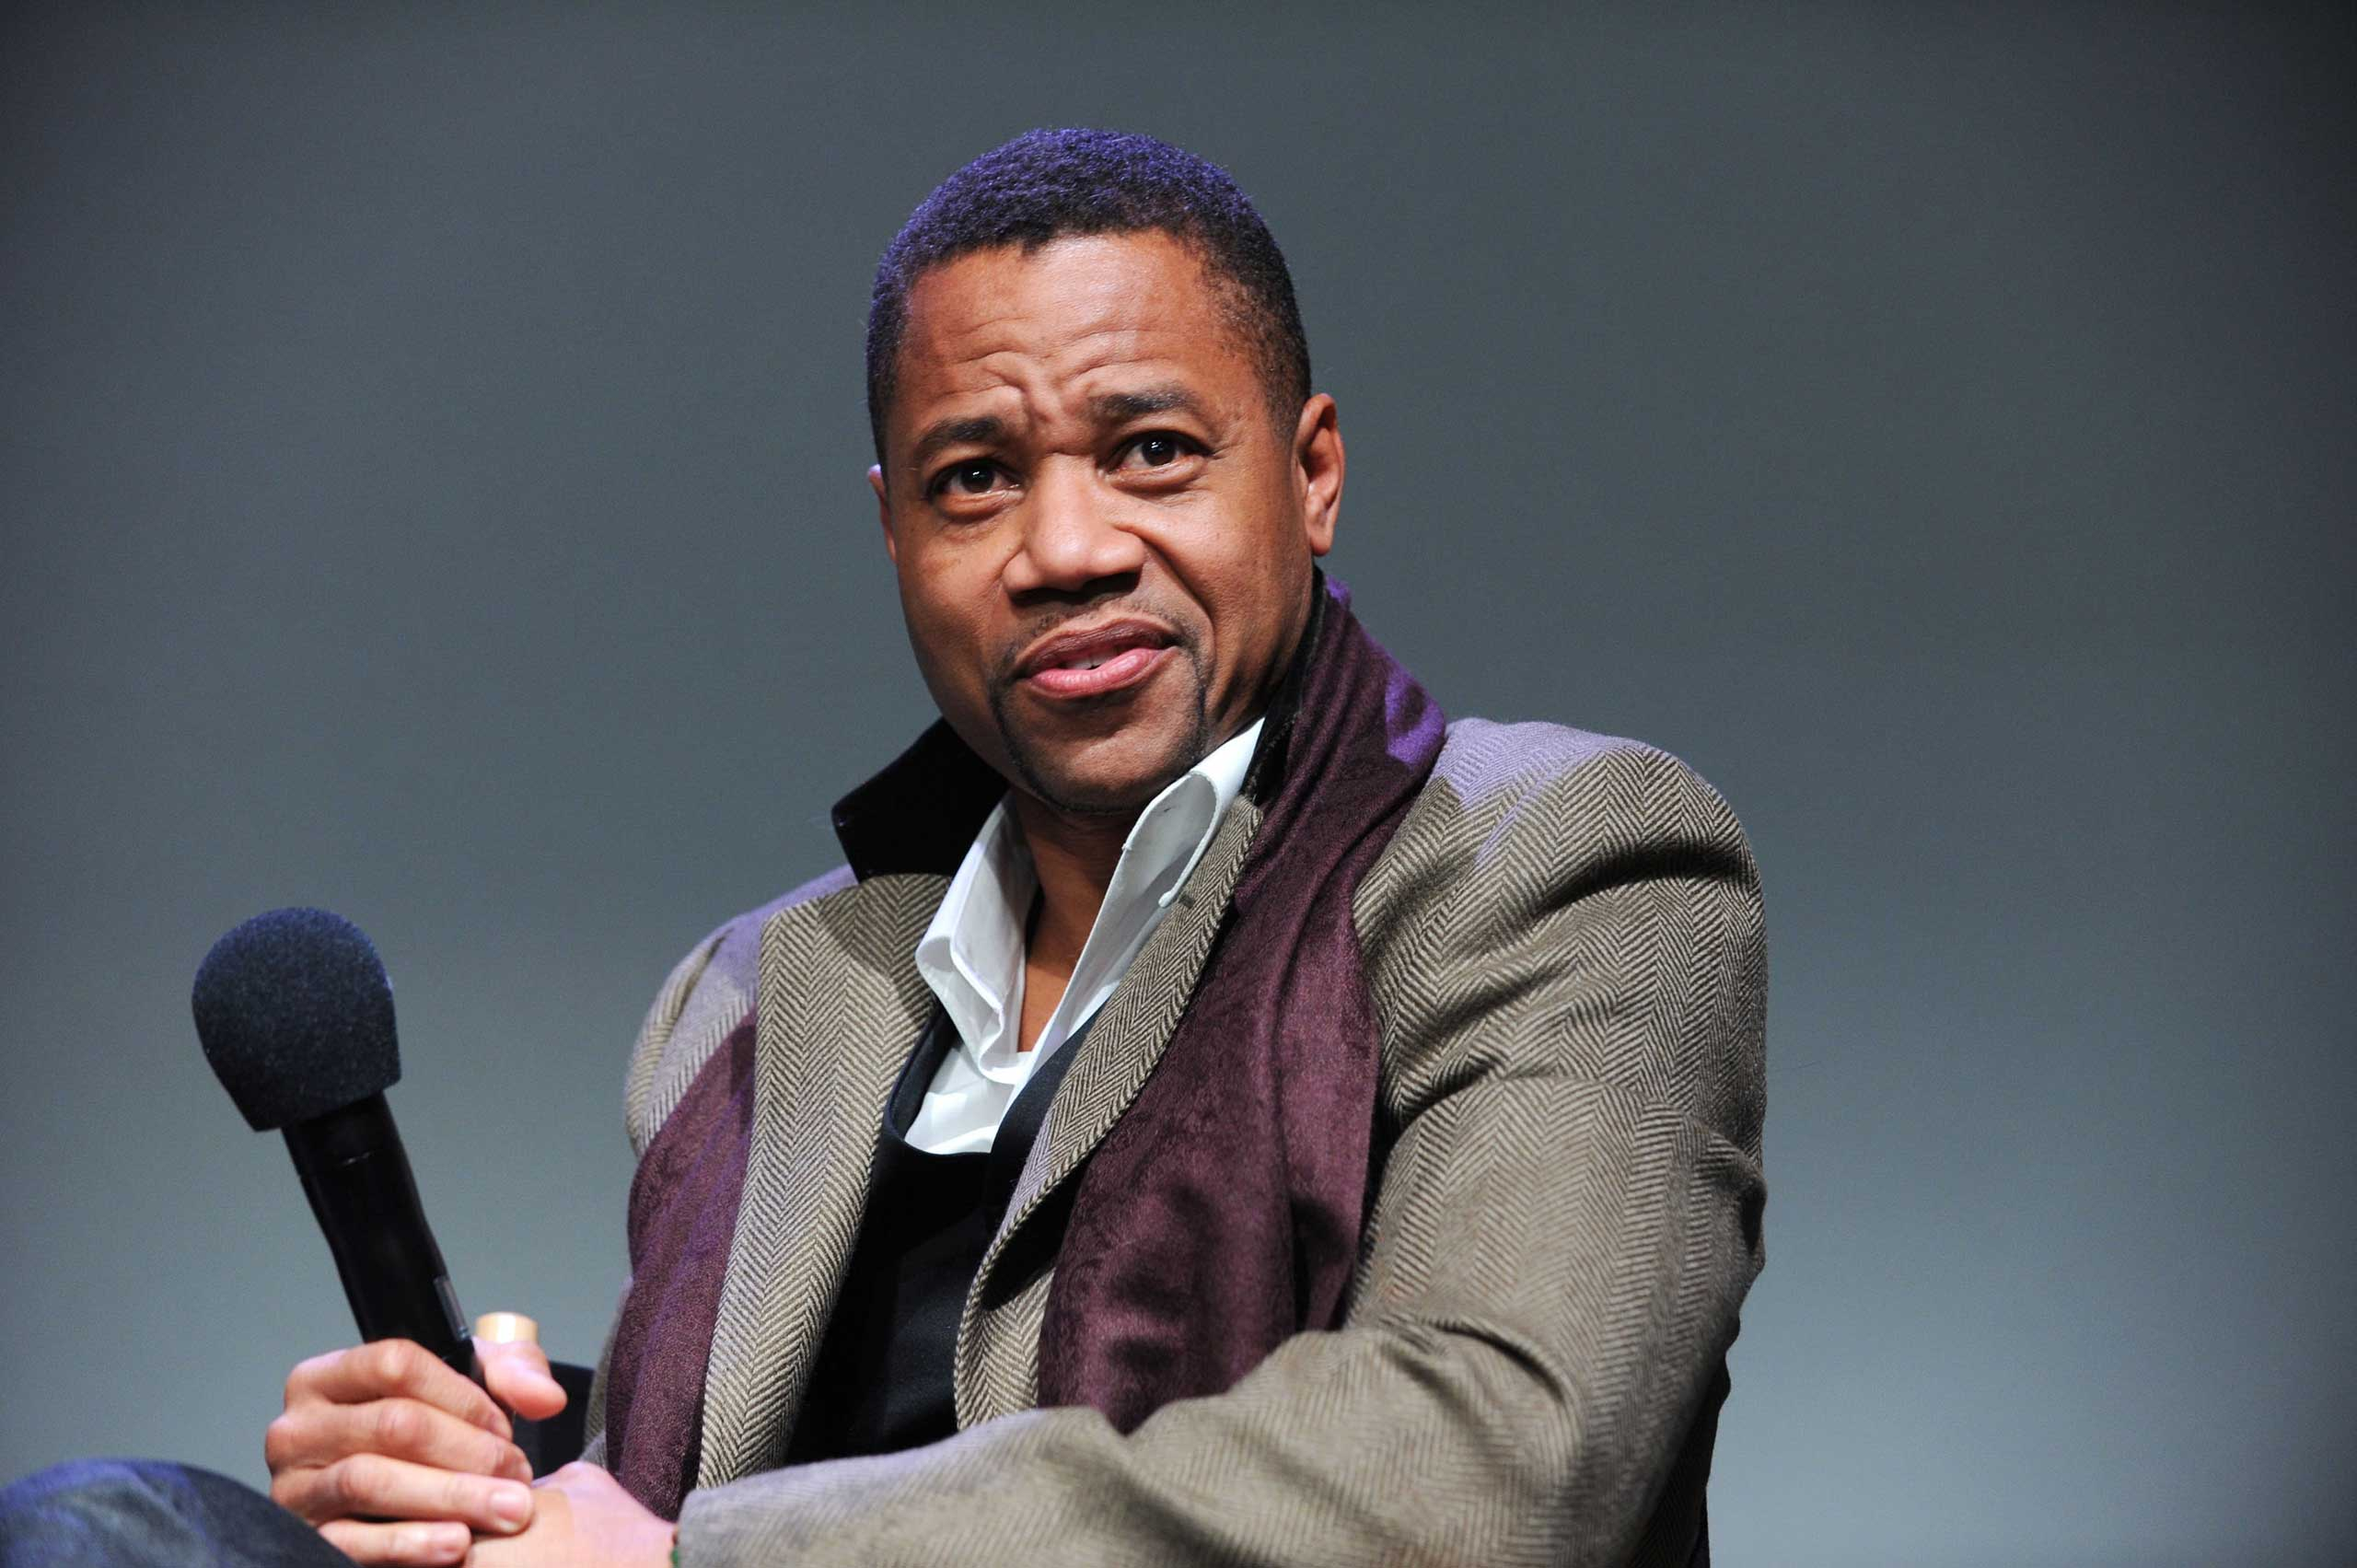 Cuba Gooding Jr. in New York, Jan. 2014.